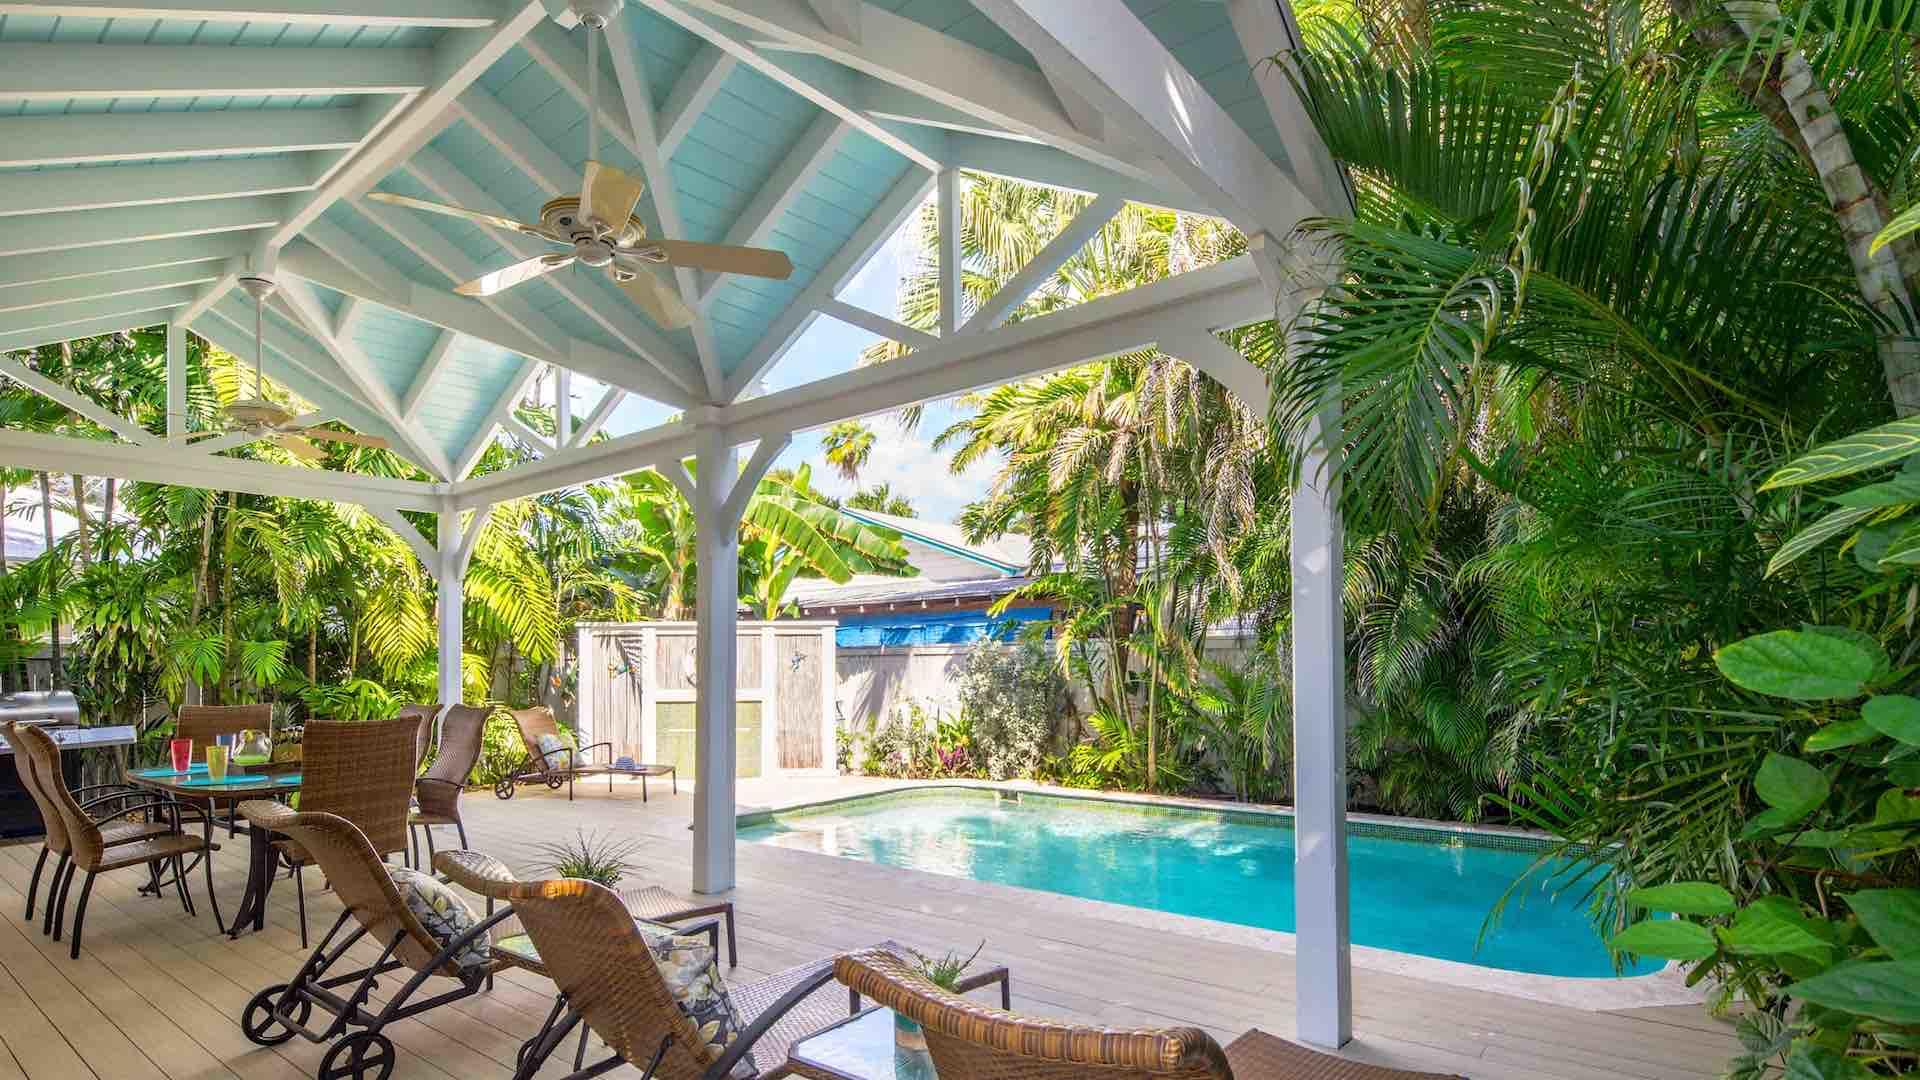 Monthly vacation home rental in Old Town Key West with pool and 3 bedrooms close to Duval